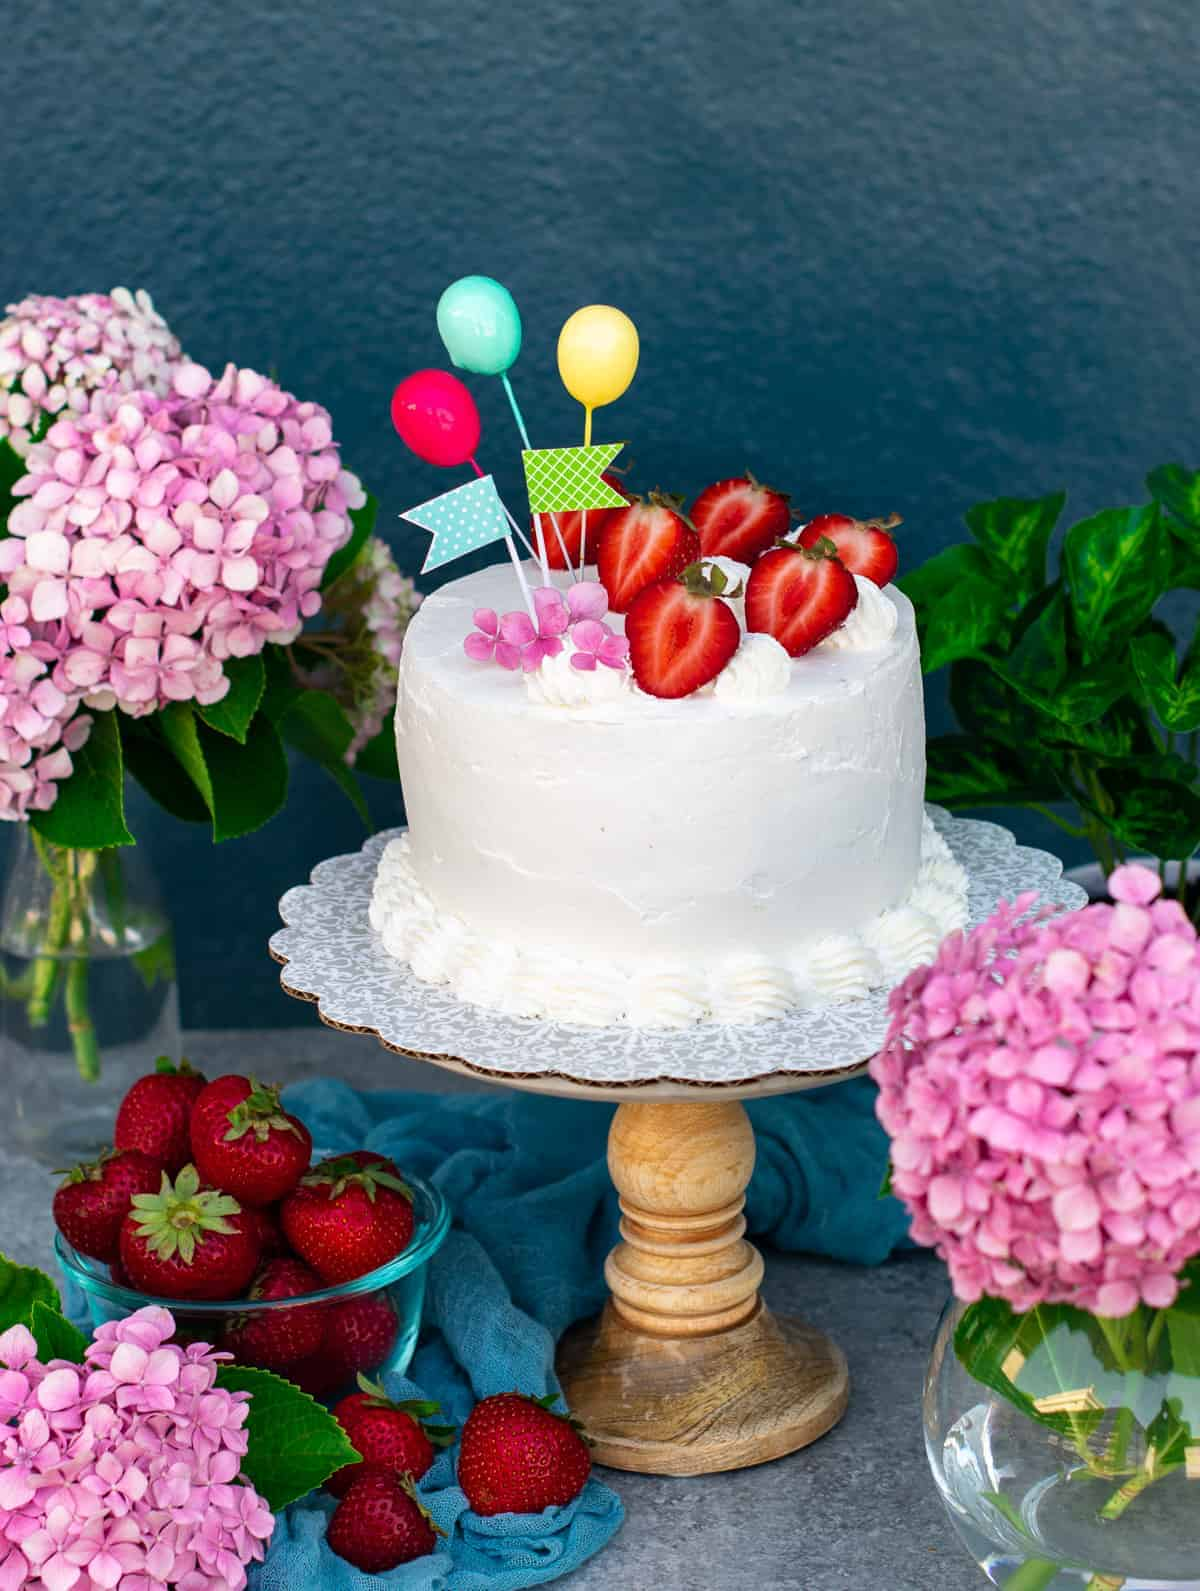 Eggless strawberries and cream cake on a cake stand